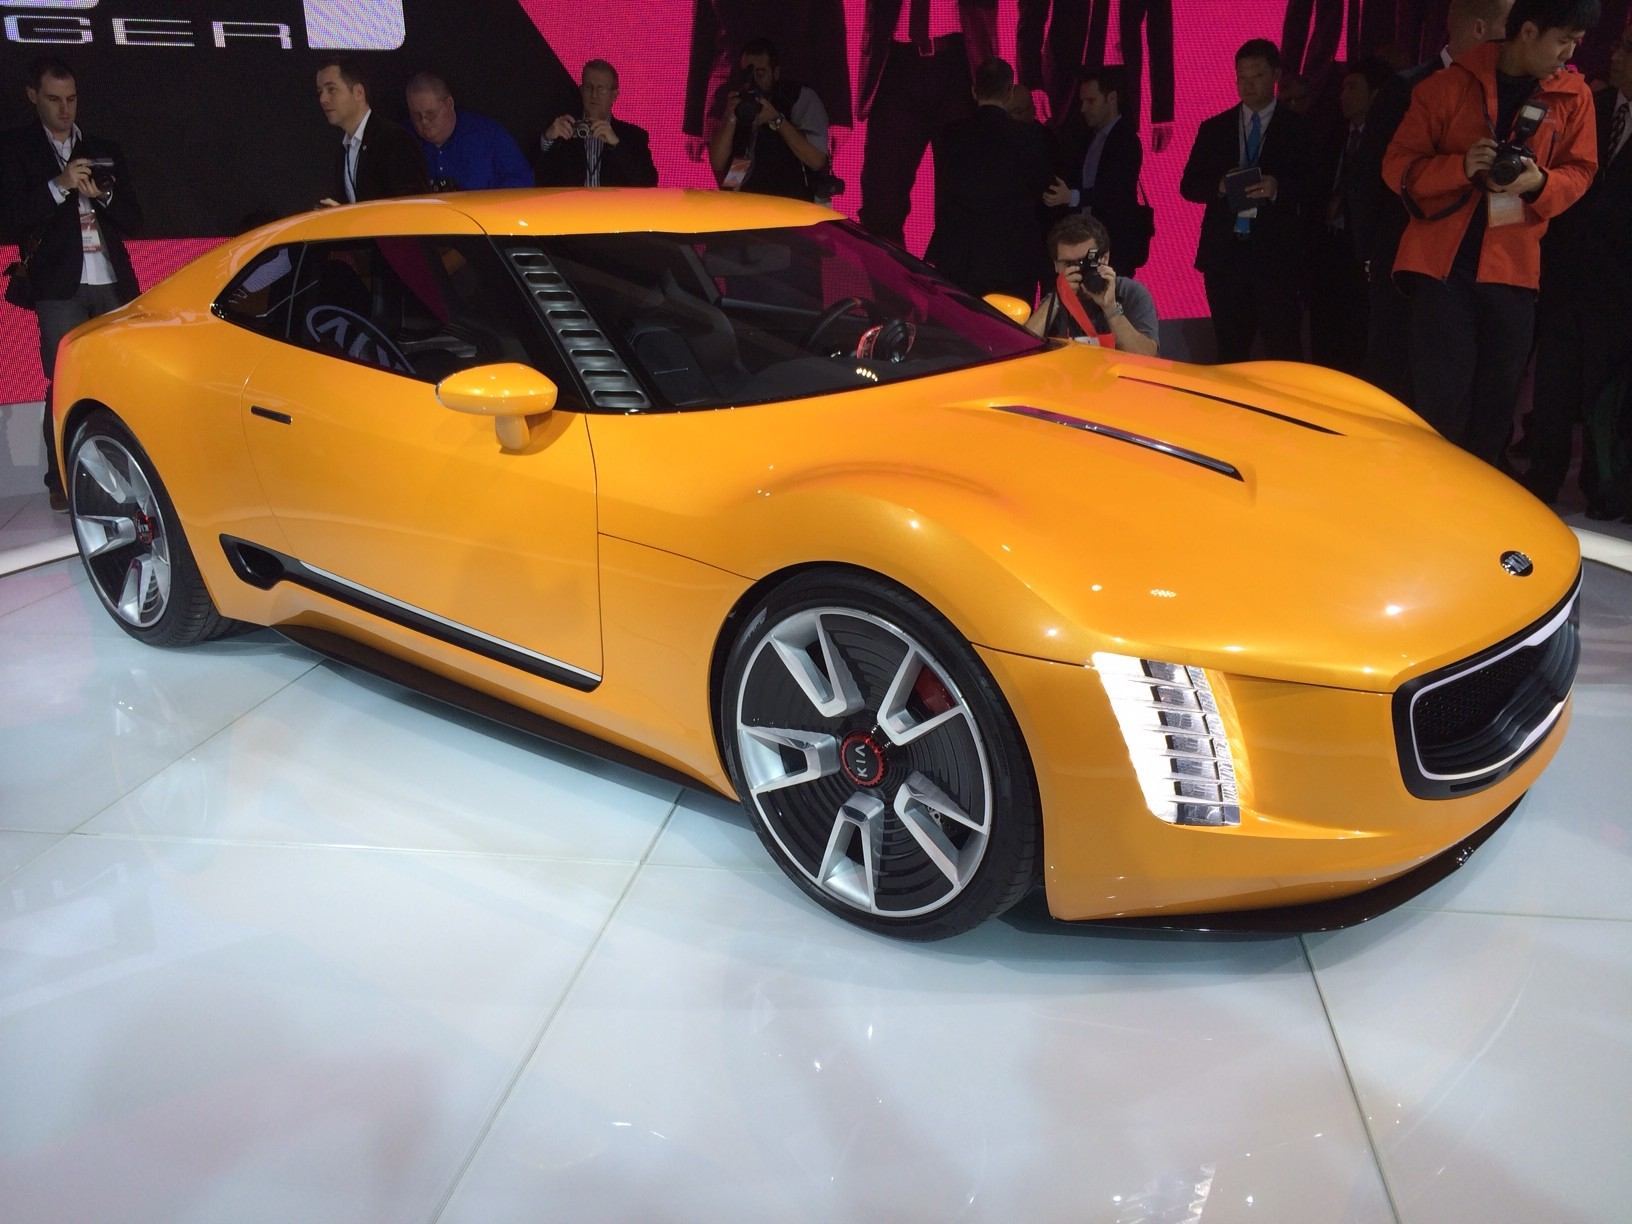 kia gt4 stinger aggressive sports car concept unveiled photos 1 of 9. Black Bedroom Furniture Sets. Home Design Ideas